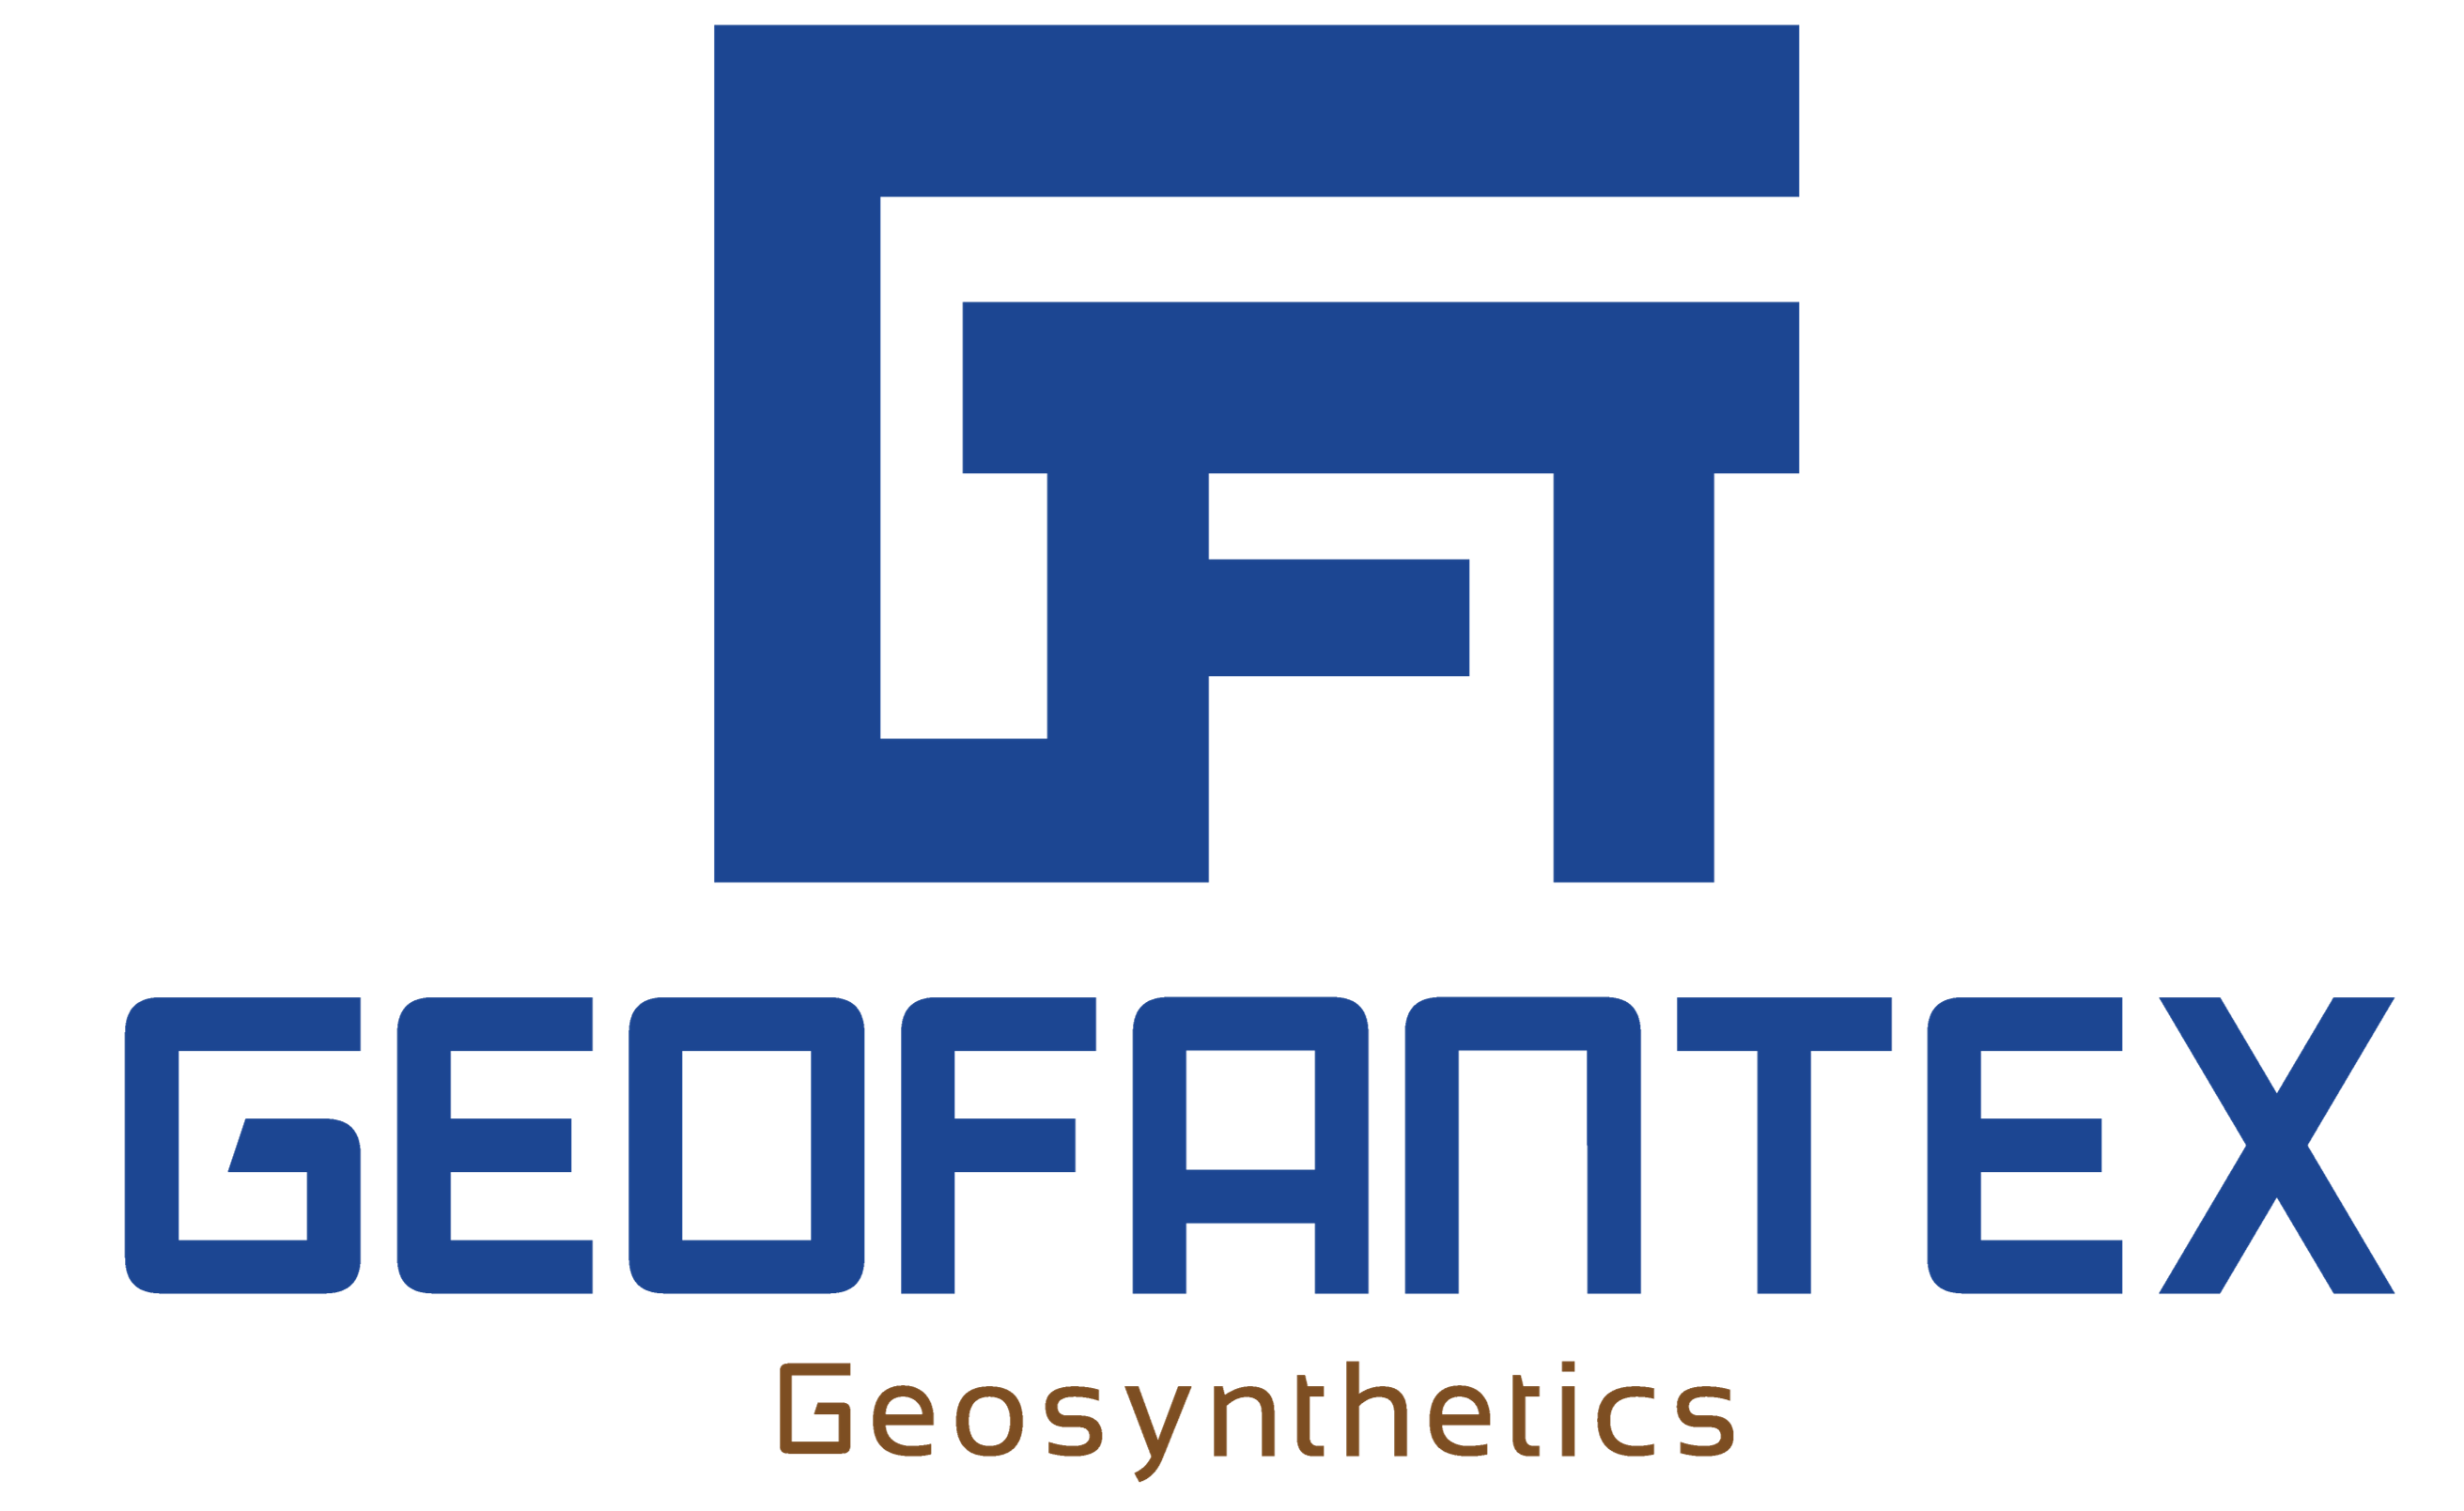 GeofanTex Geosynthetics Co, Ltd